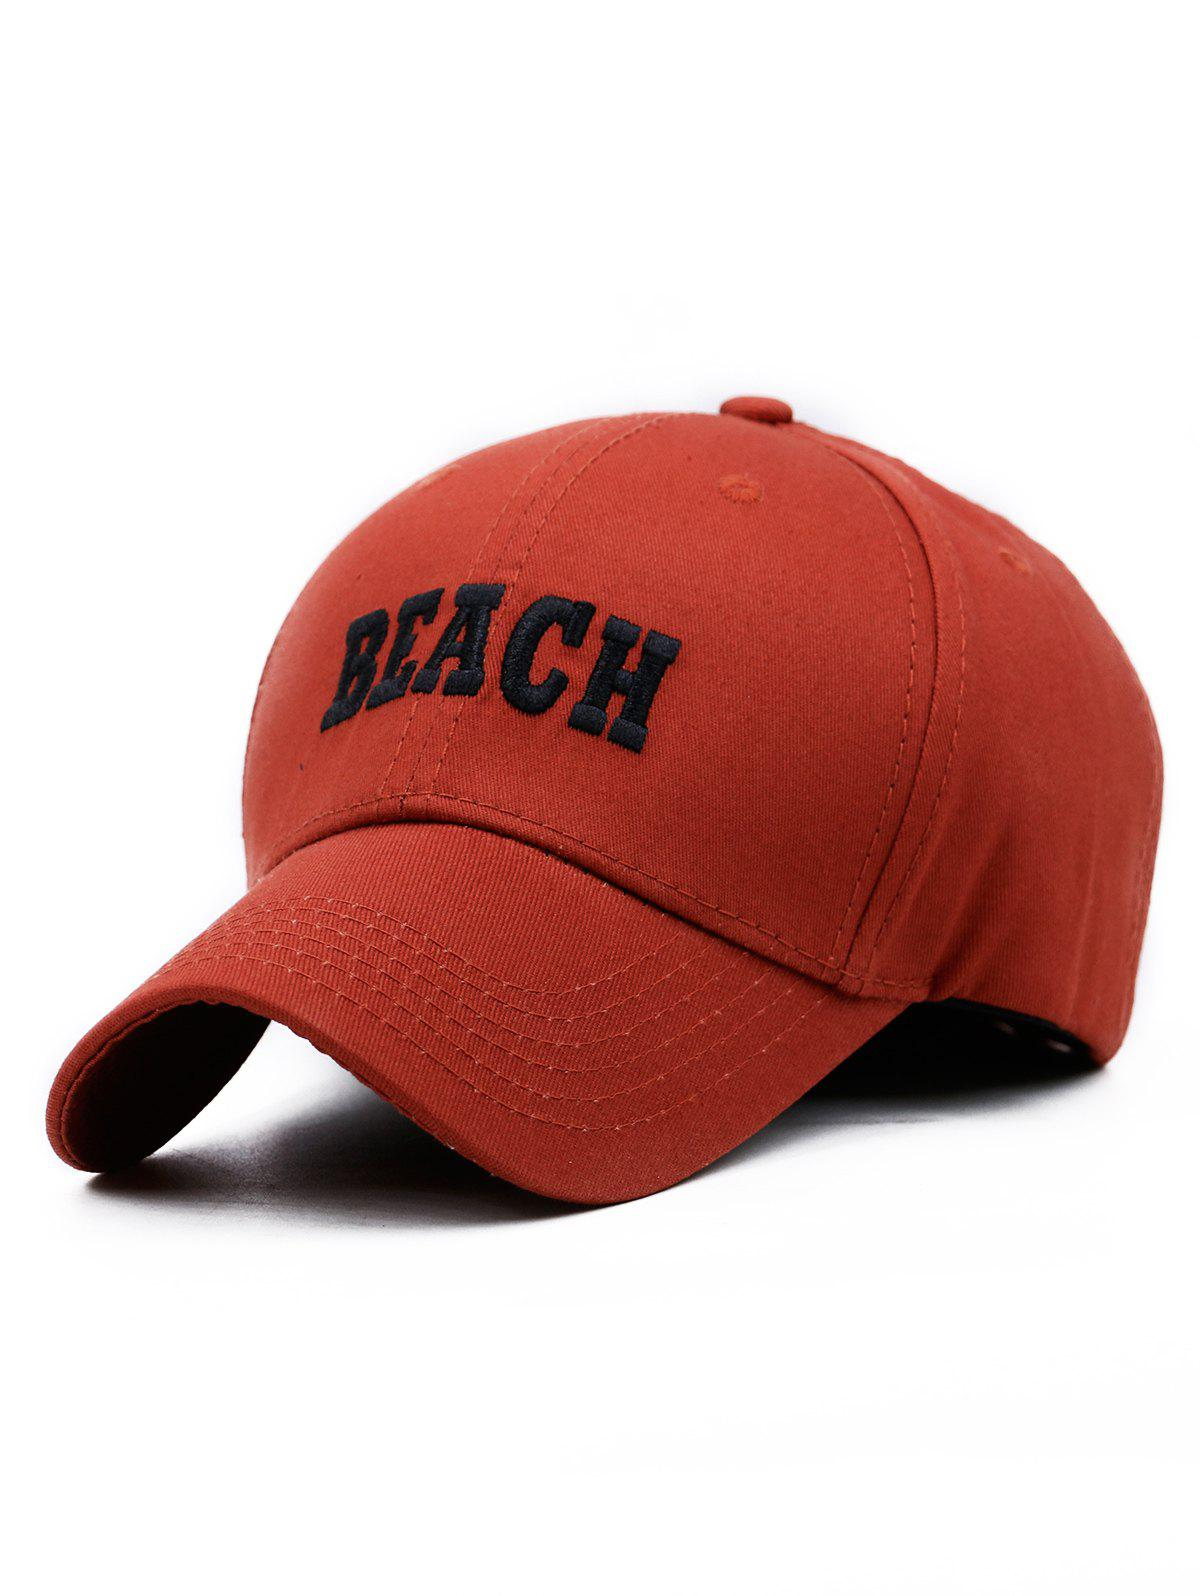 BEACH Embroidery Adjustable Snapback Hat - CHESTNUT RED